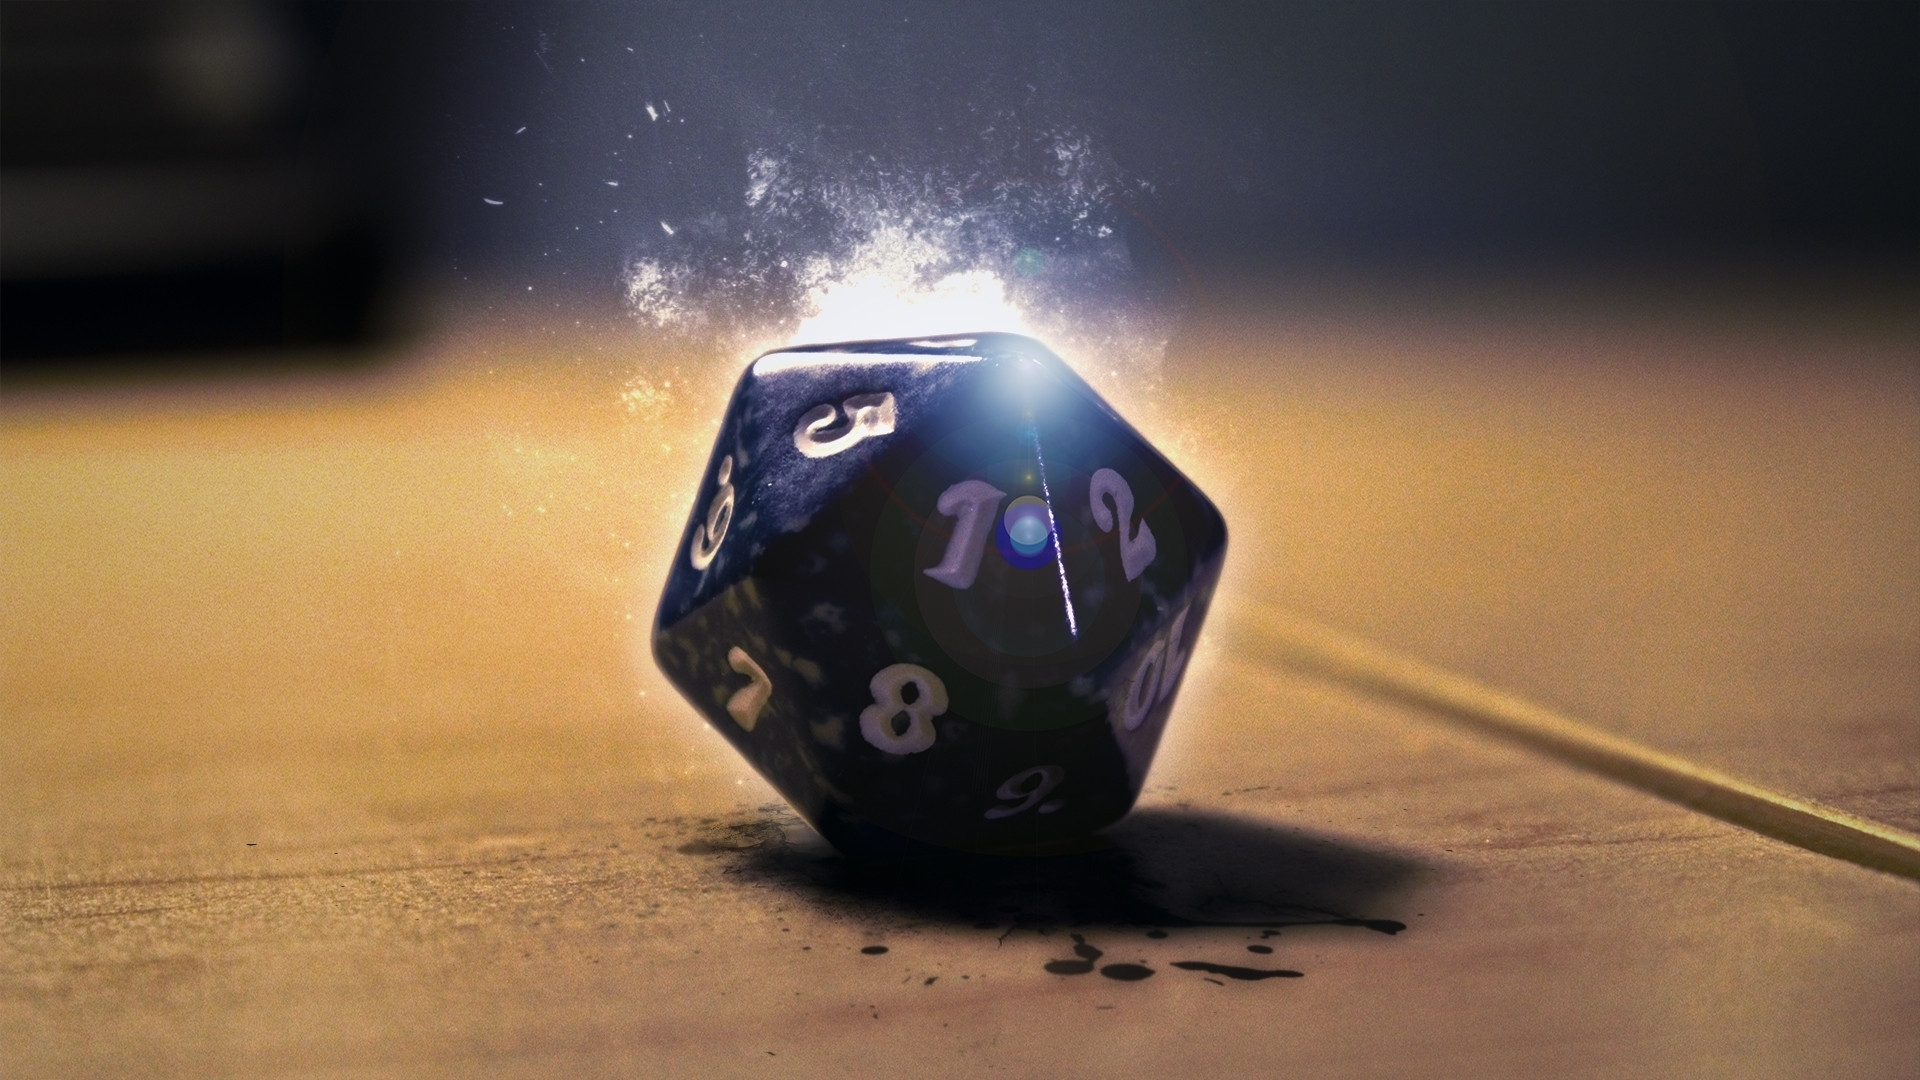 a nice d20 wallpaper. : dnd